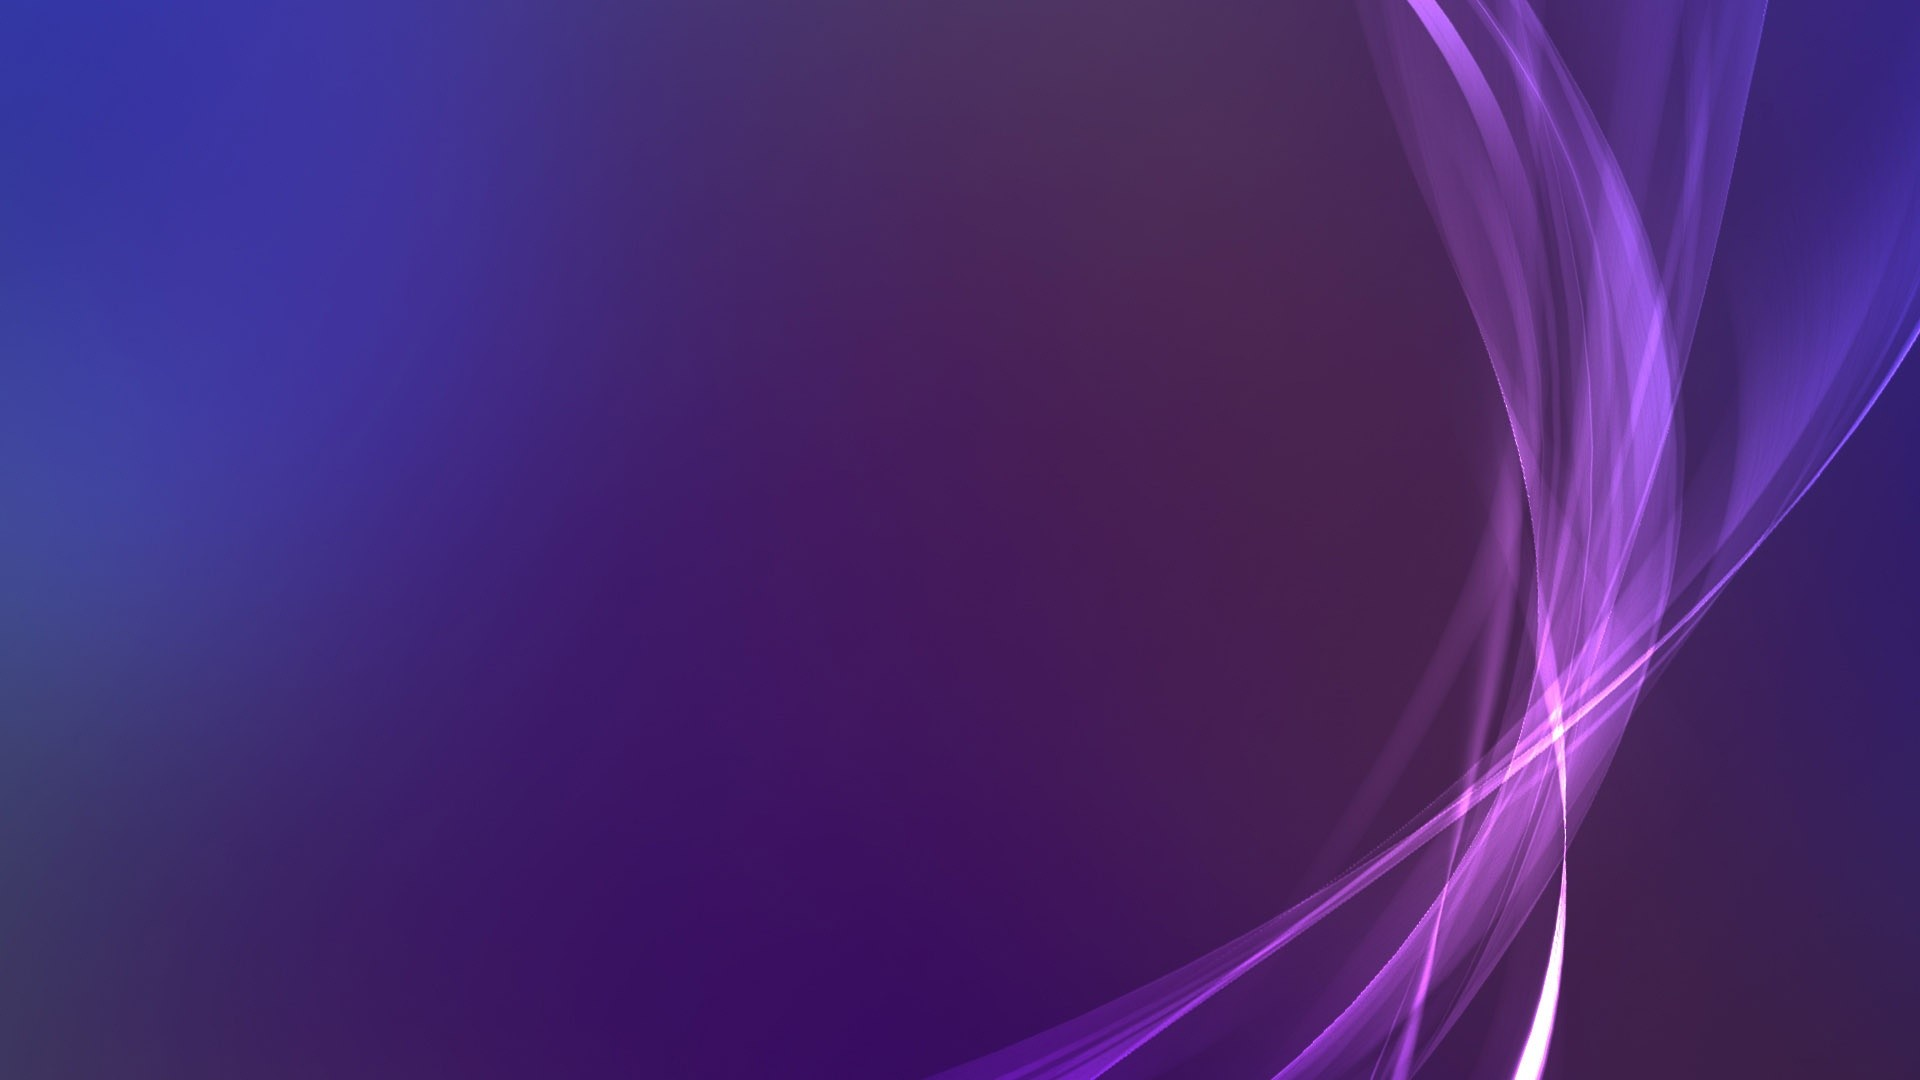 Purple Backround HD Image Abstract & 3D